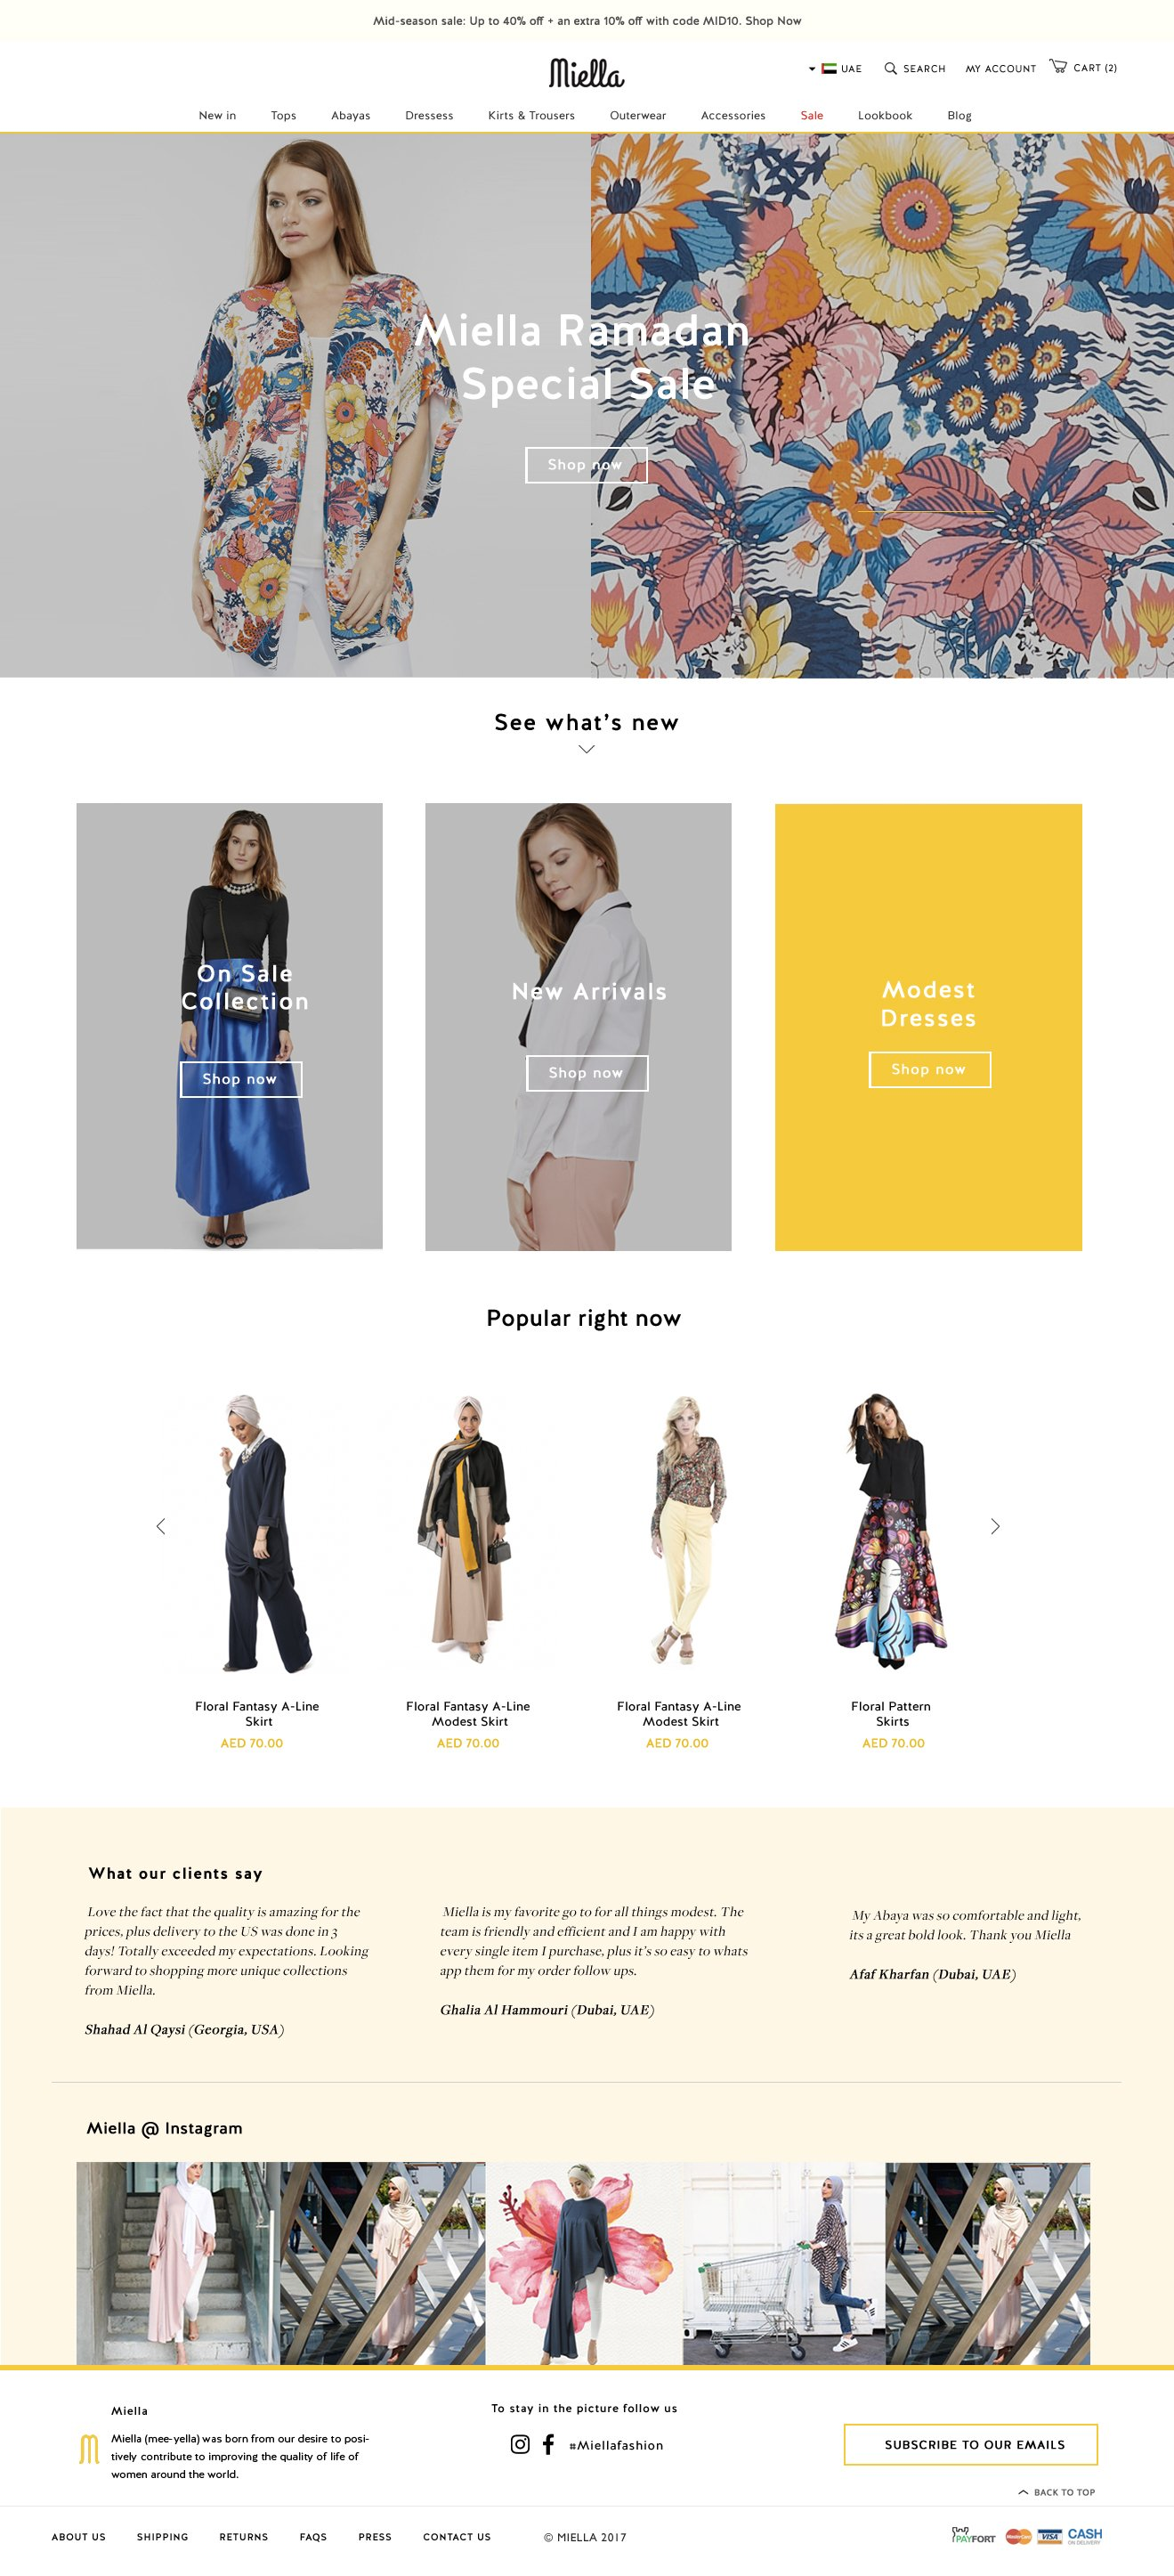 modestwear-ecommerce-website-design